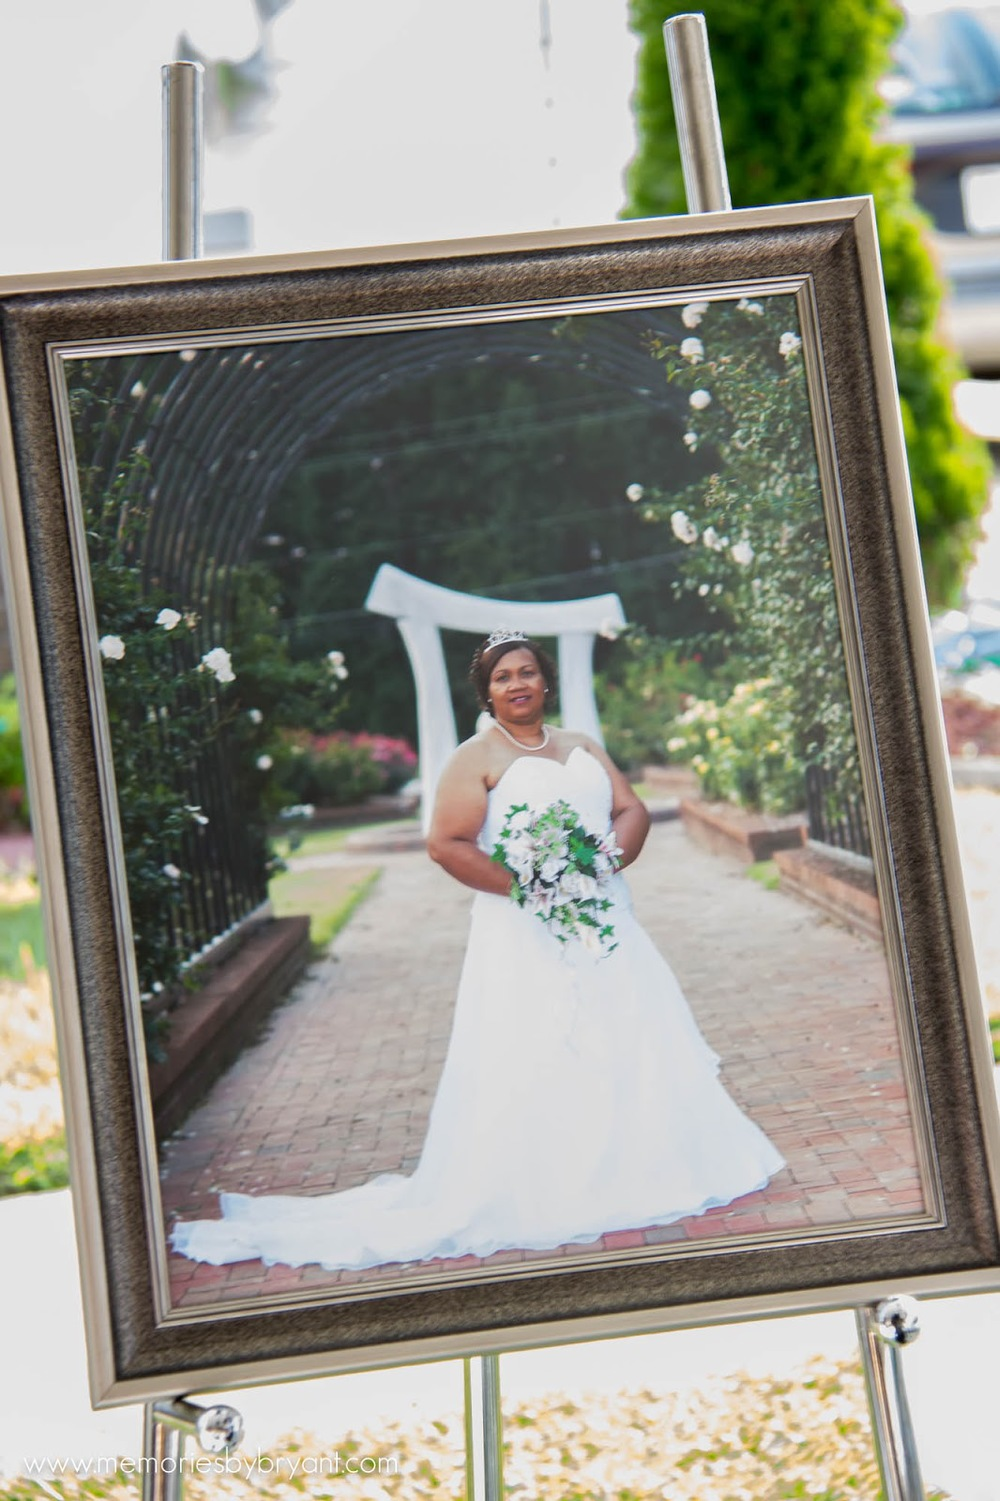 vow renewal bridal portrait wedding details